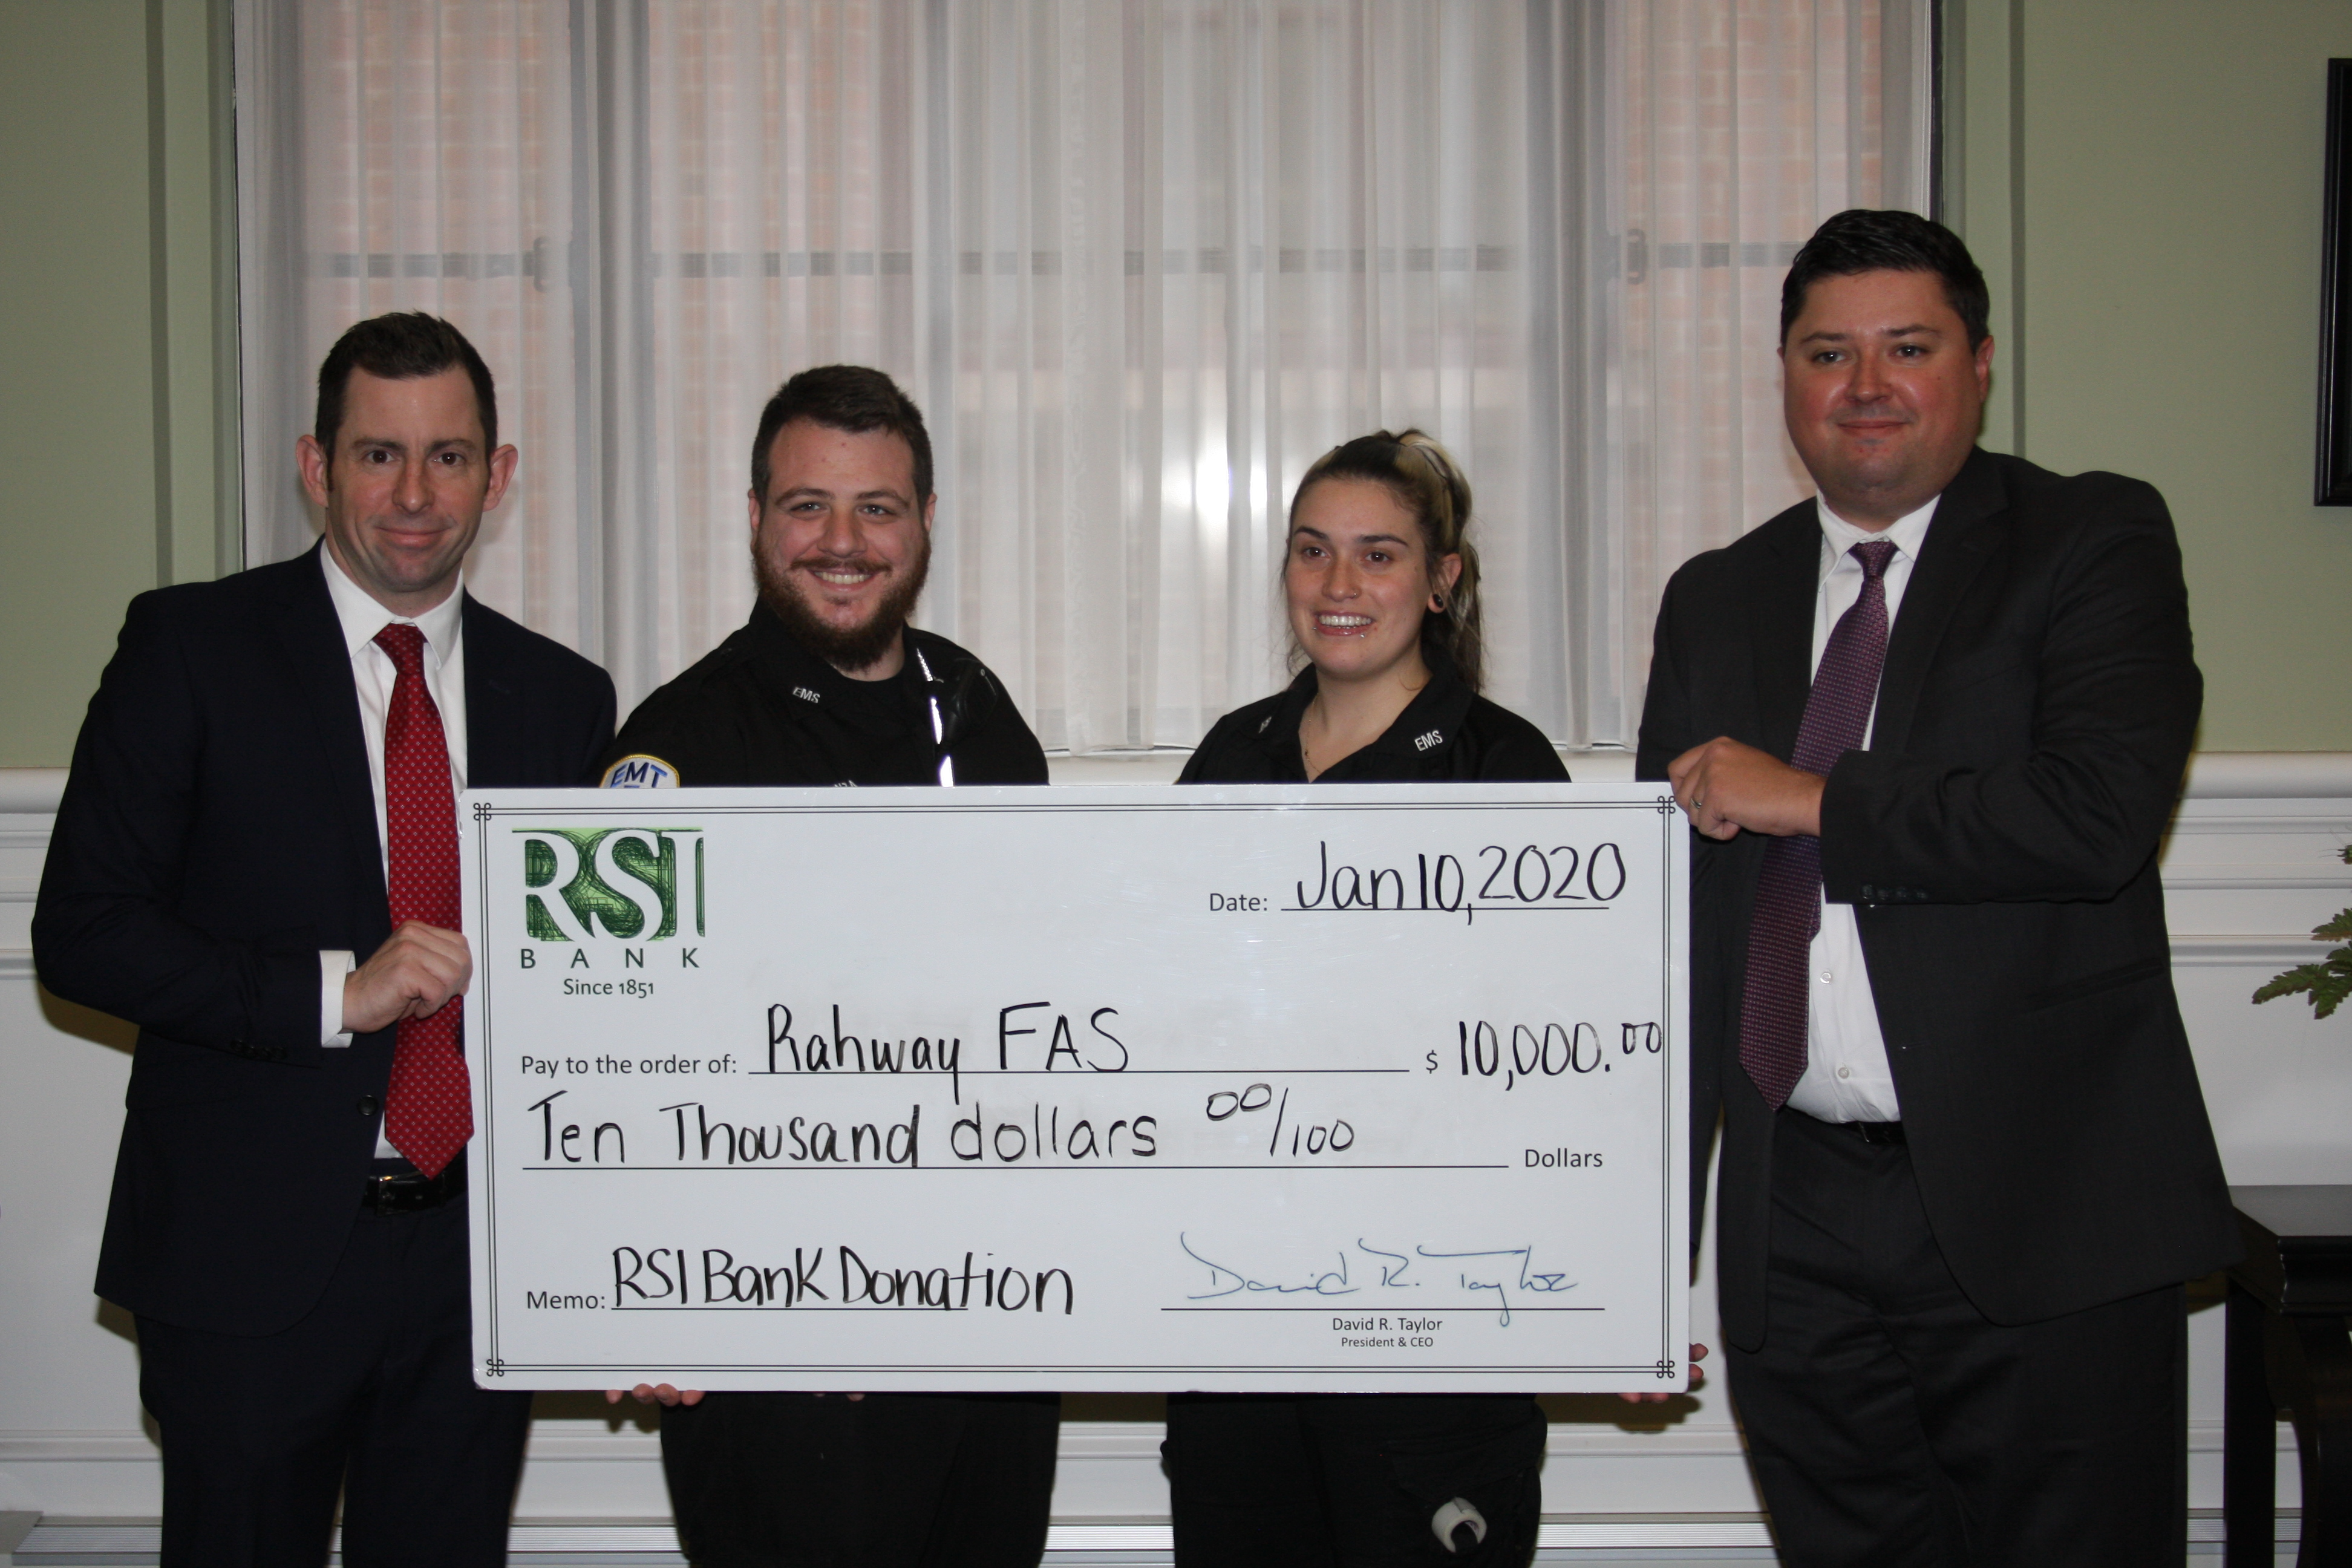 Rahway First Aid Squad accepts a check from RSI Bank in the amount of $10,000.